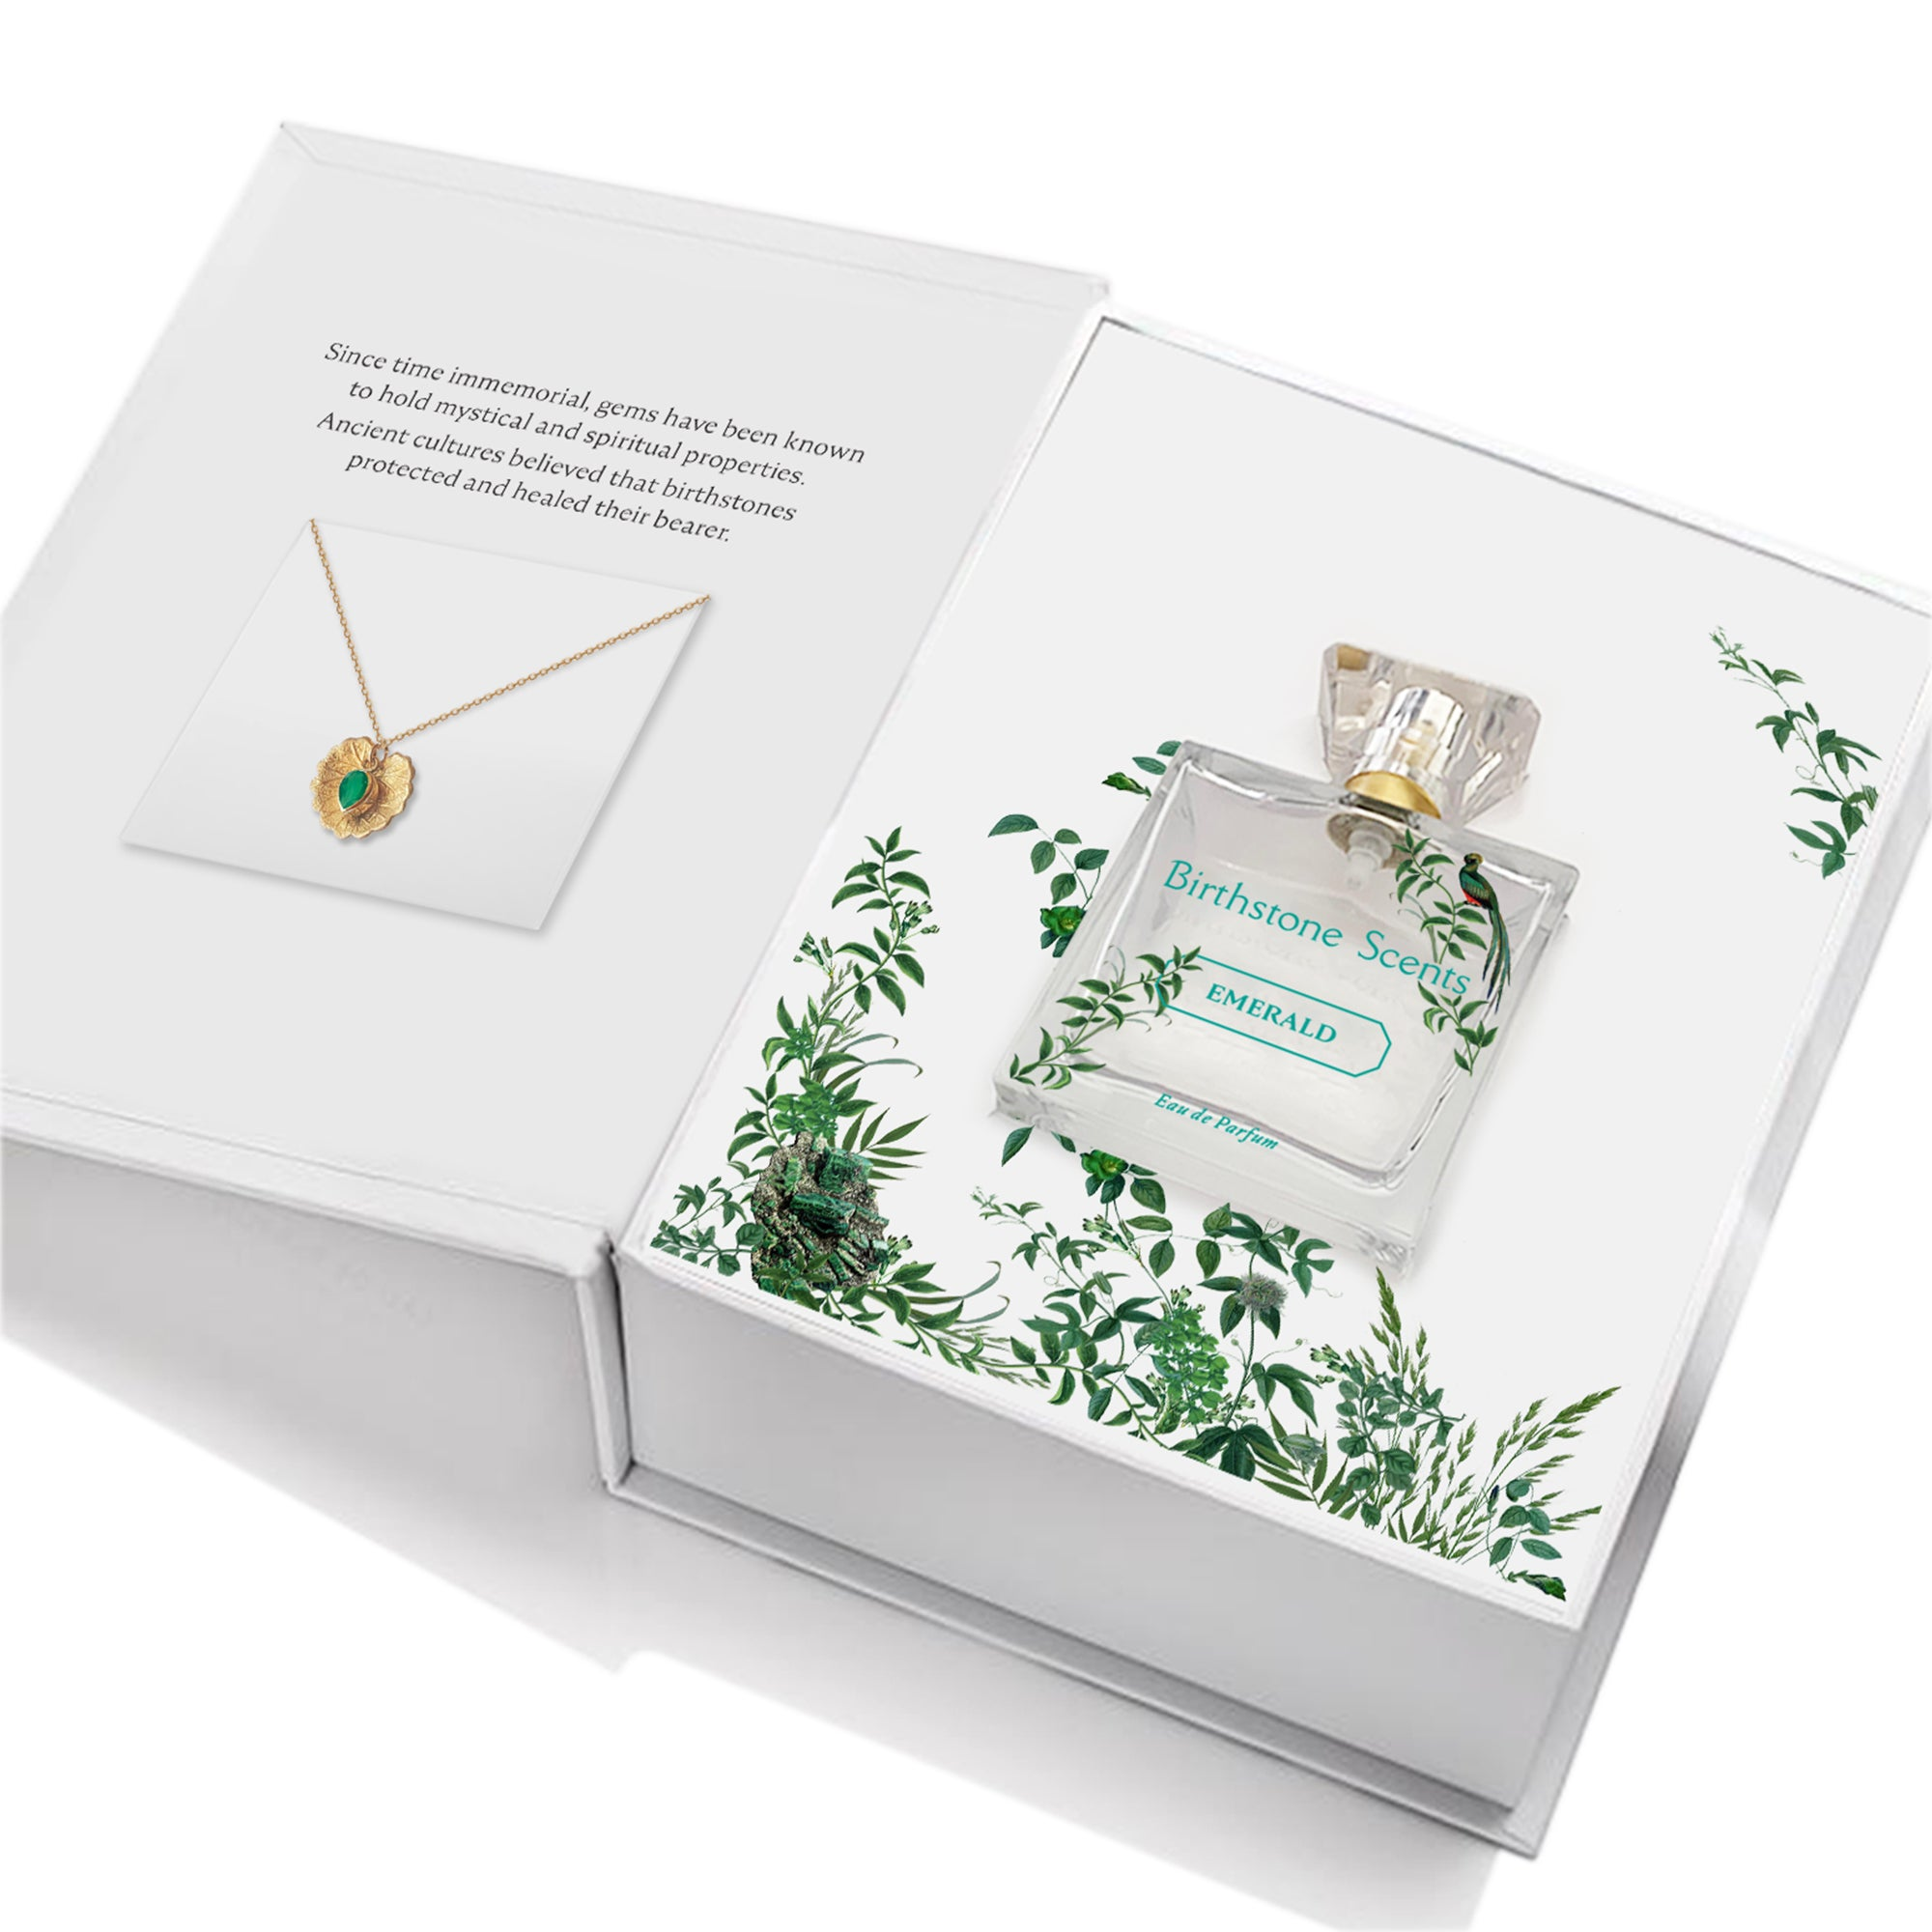 EMERALD PERFUME WITH NECKLACE | May - Birthstone Scents